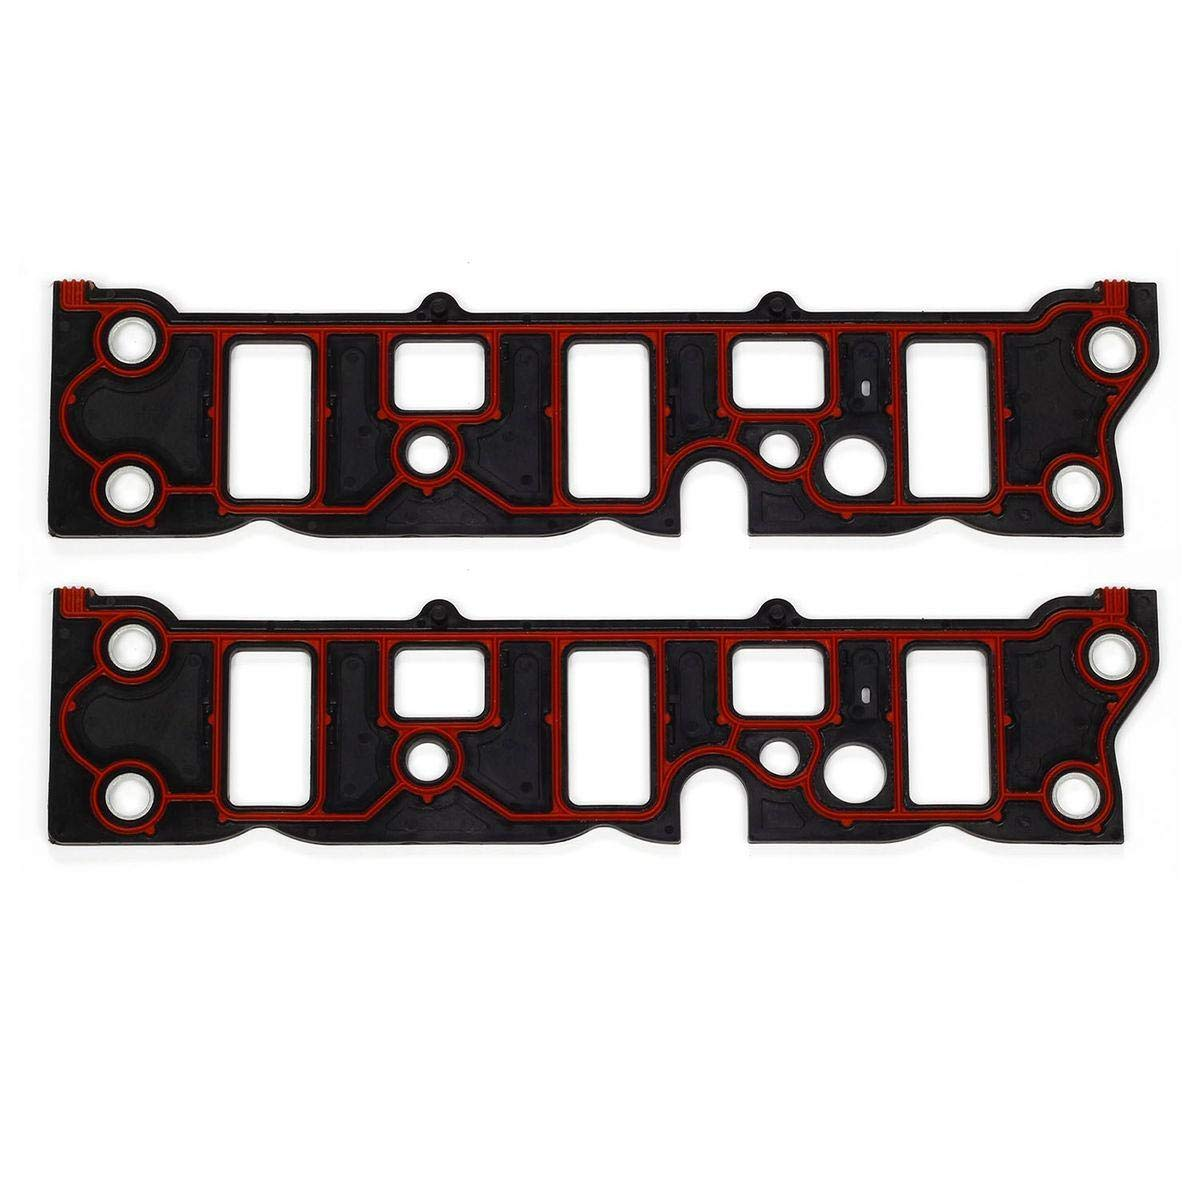 Vincos Engine T Intake Manifold Gasket Lower Intake Gaskets Set Compatible with Buick//Chevy//Oldsmobile//Pontiac V6 3.8 1995-2009